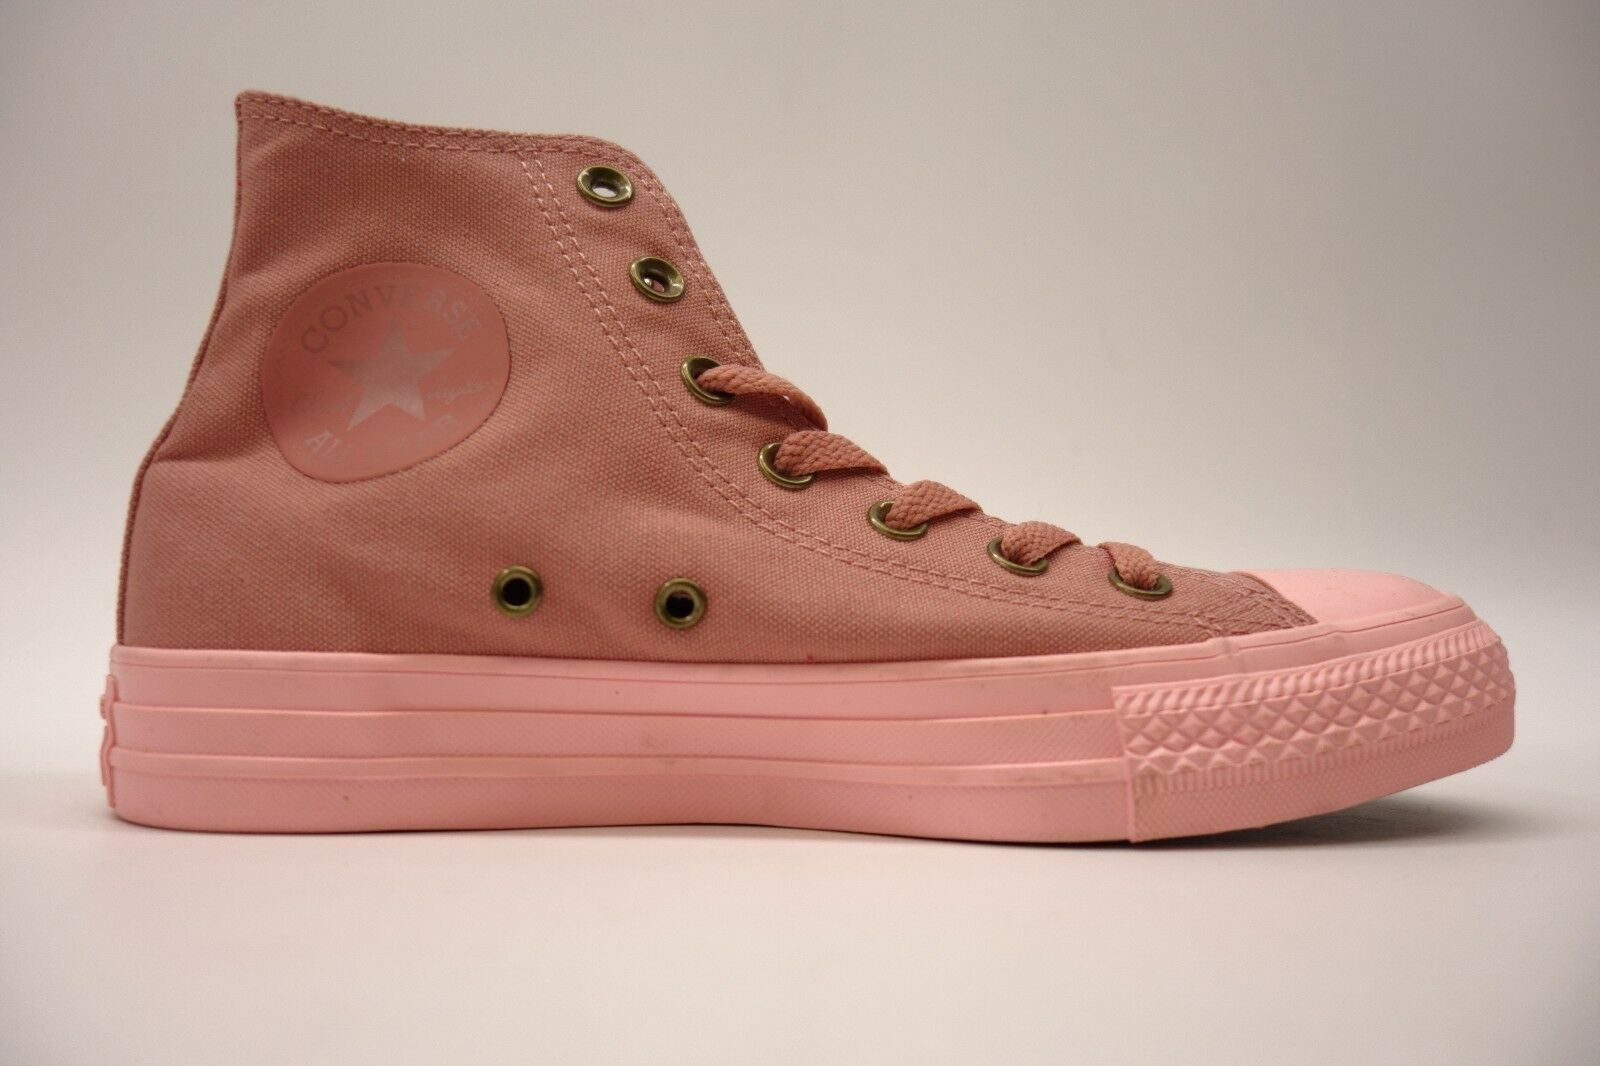 New Converse Womens Bubblegum Pink Chuck Taylor All Star High Top Canvas shoes 7